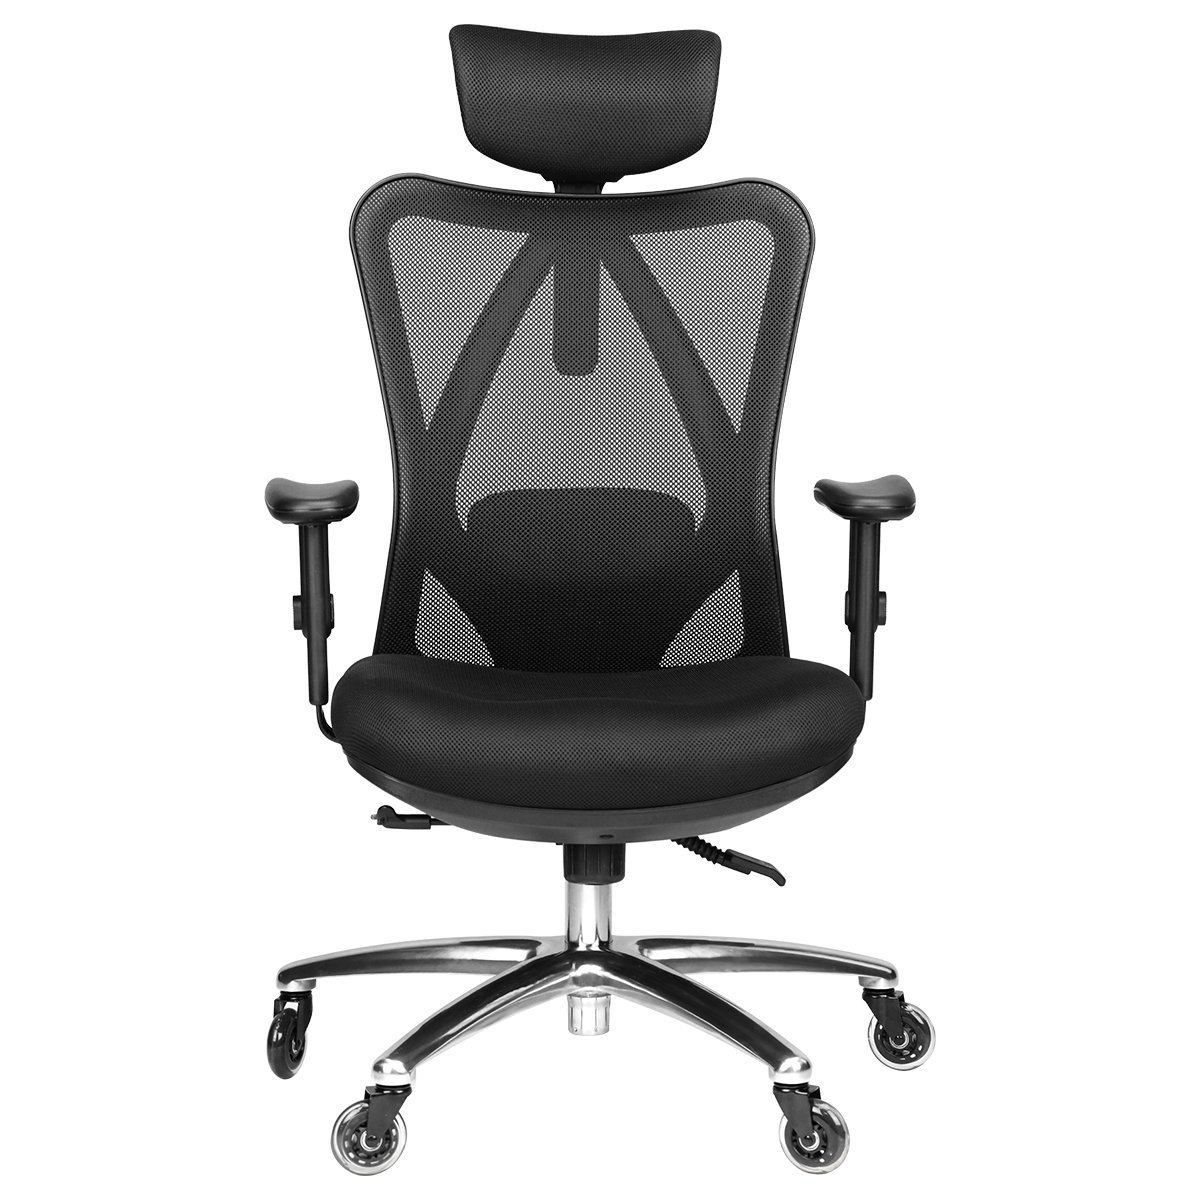 Best Office Chair for Back Pain Reviews – Best Office ...